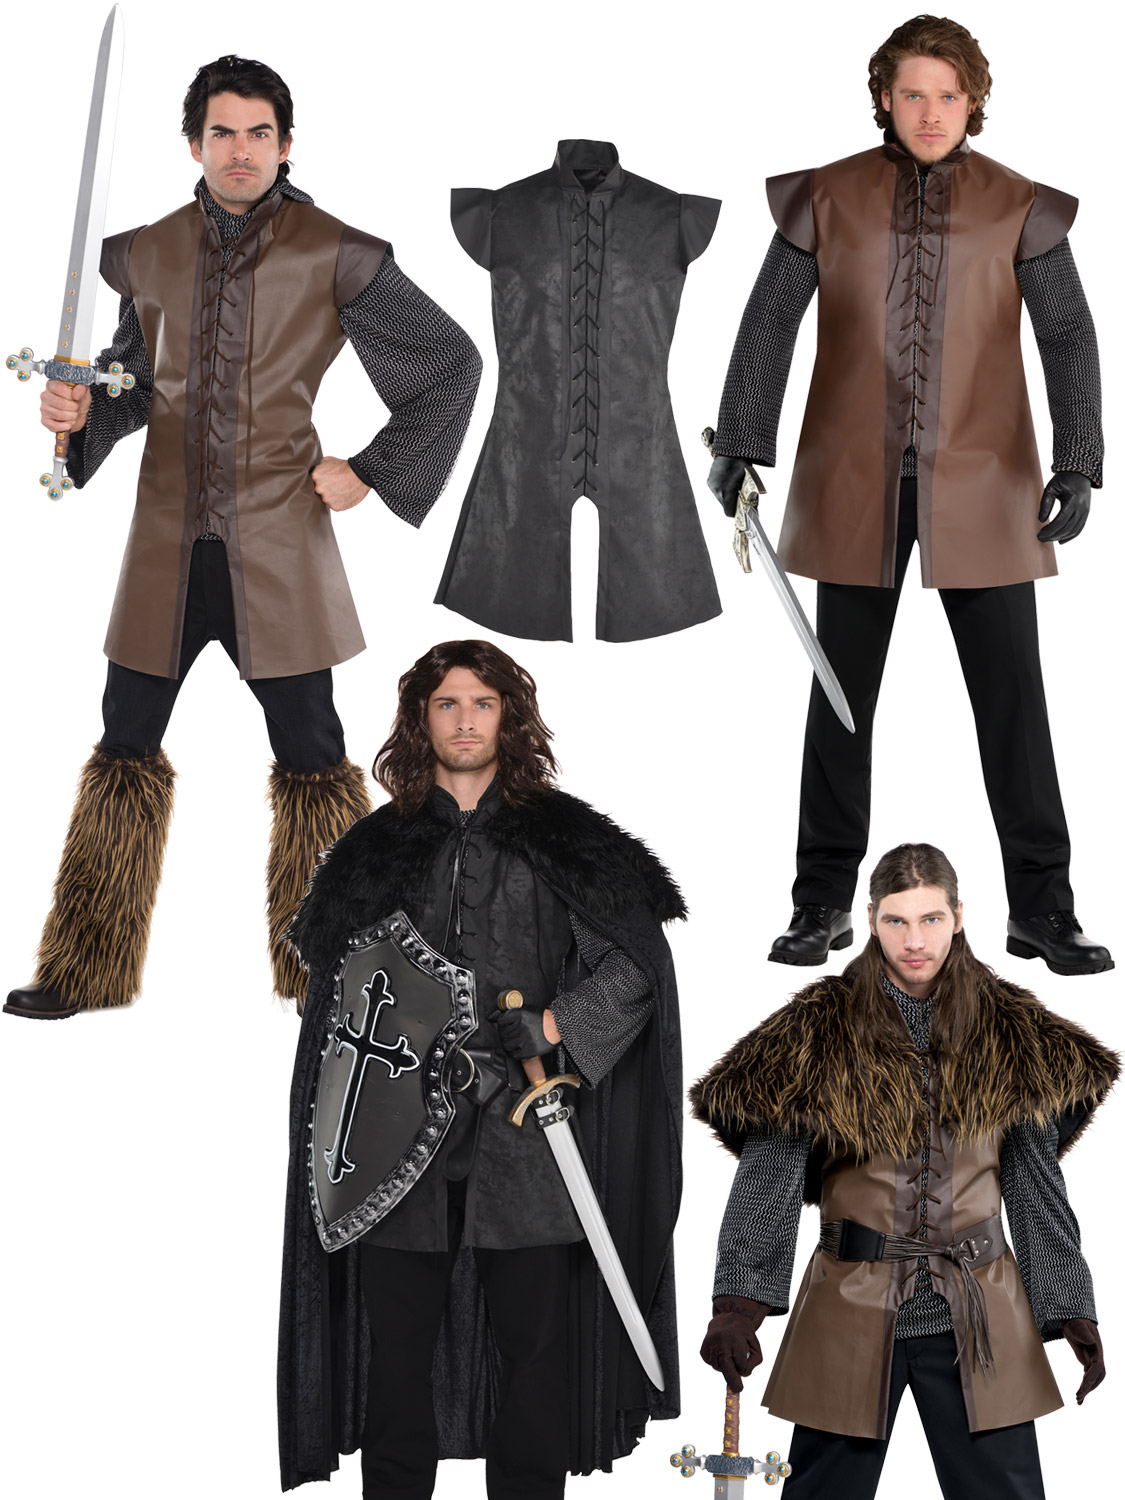 Mens game of thrones costumes adults warrior fancy dress tunic cloak transform yourself into a character from the popular tv series game of thrones ideal for a themed party or new years eve solutioingenieria Gallery